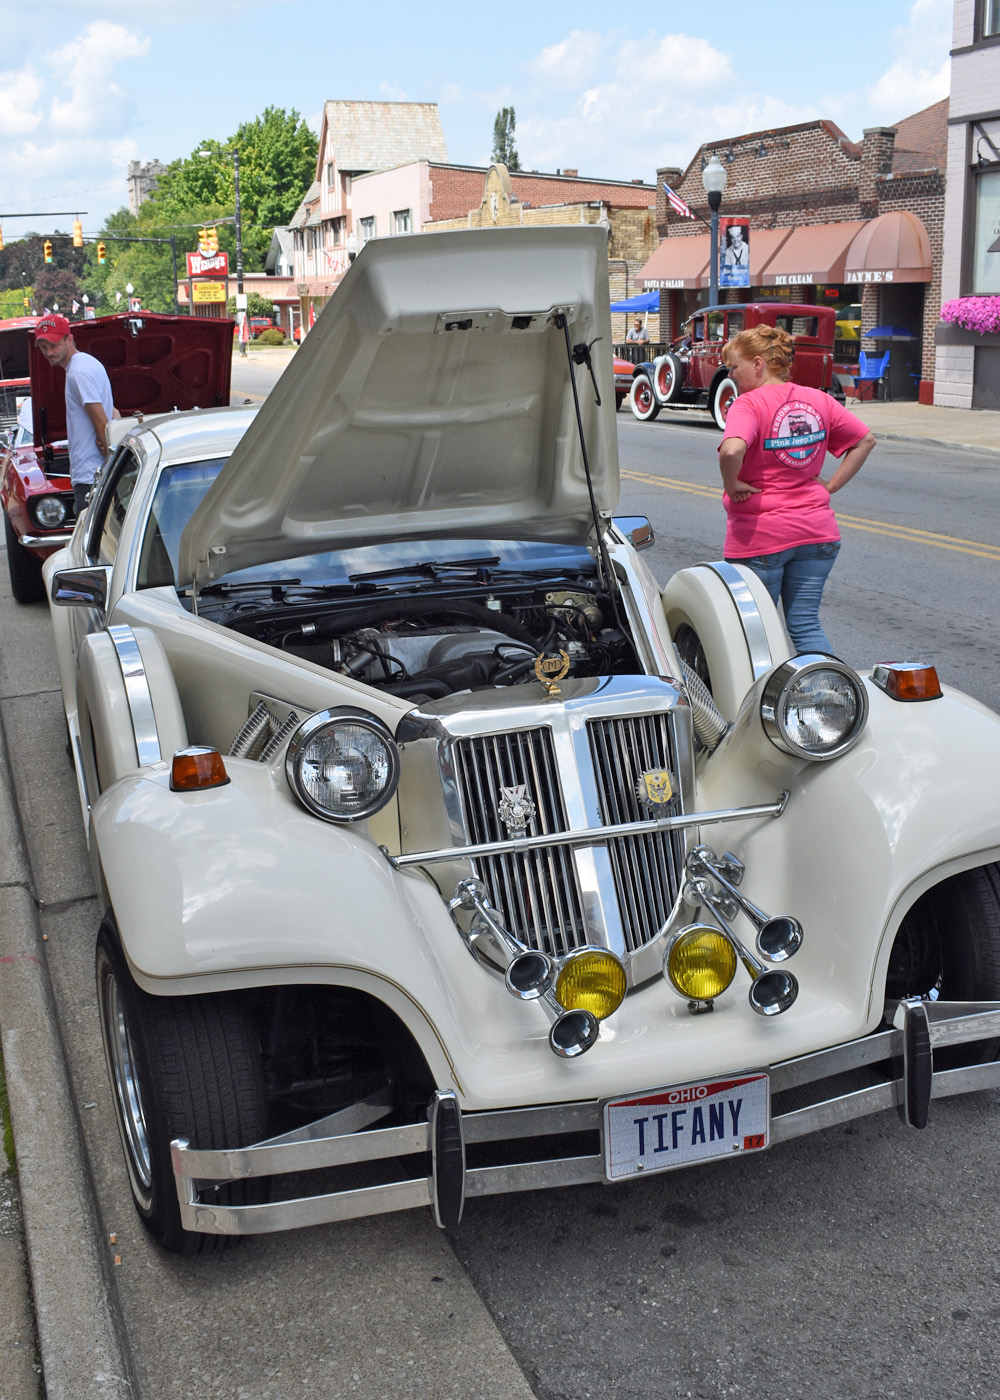 2018 Uptowne Galion Cruise-in: Photos by Don Tudor - Galion Inquirer